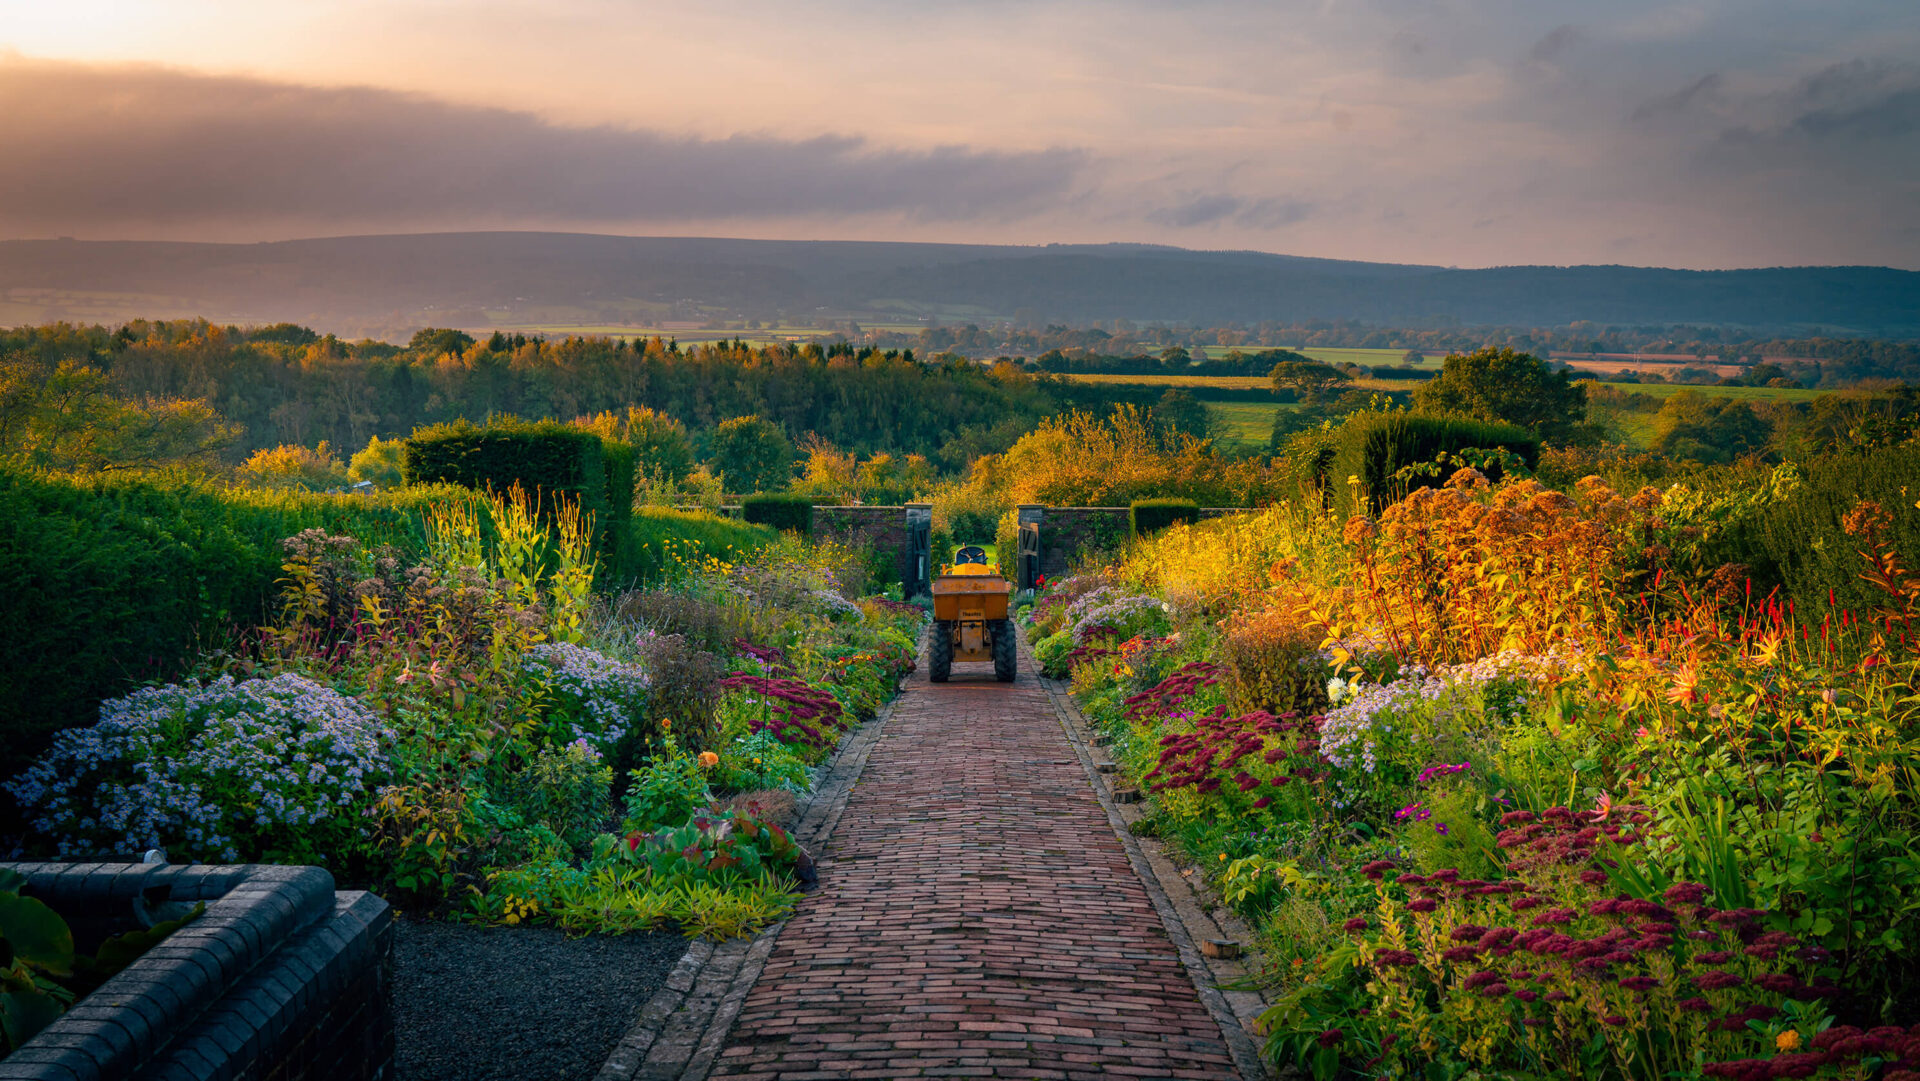 Sunrise Over The Herbacious Beds